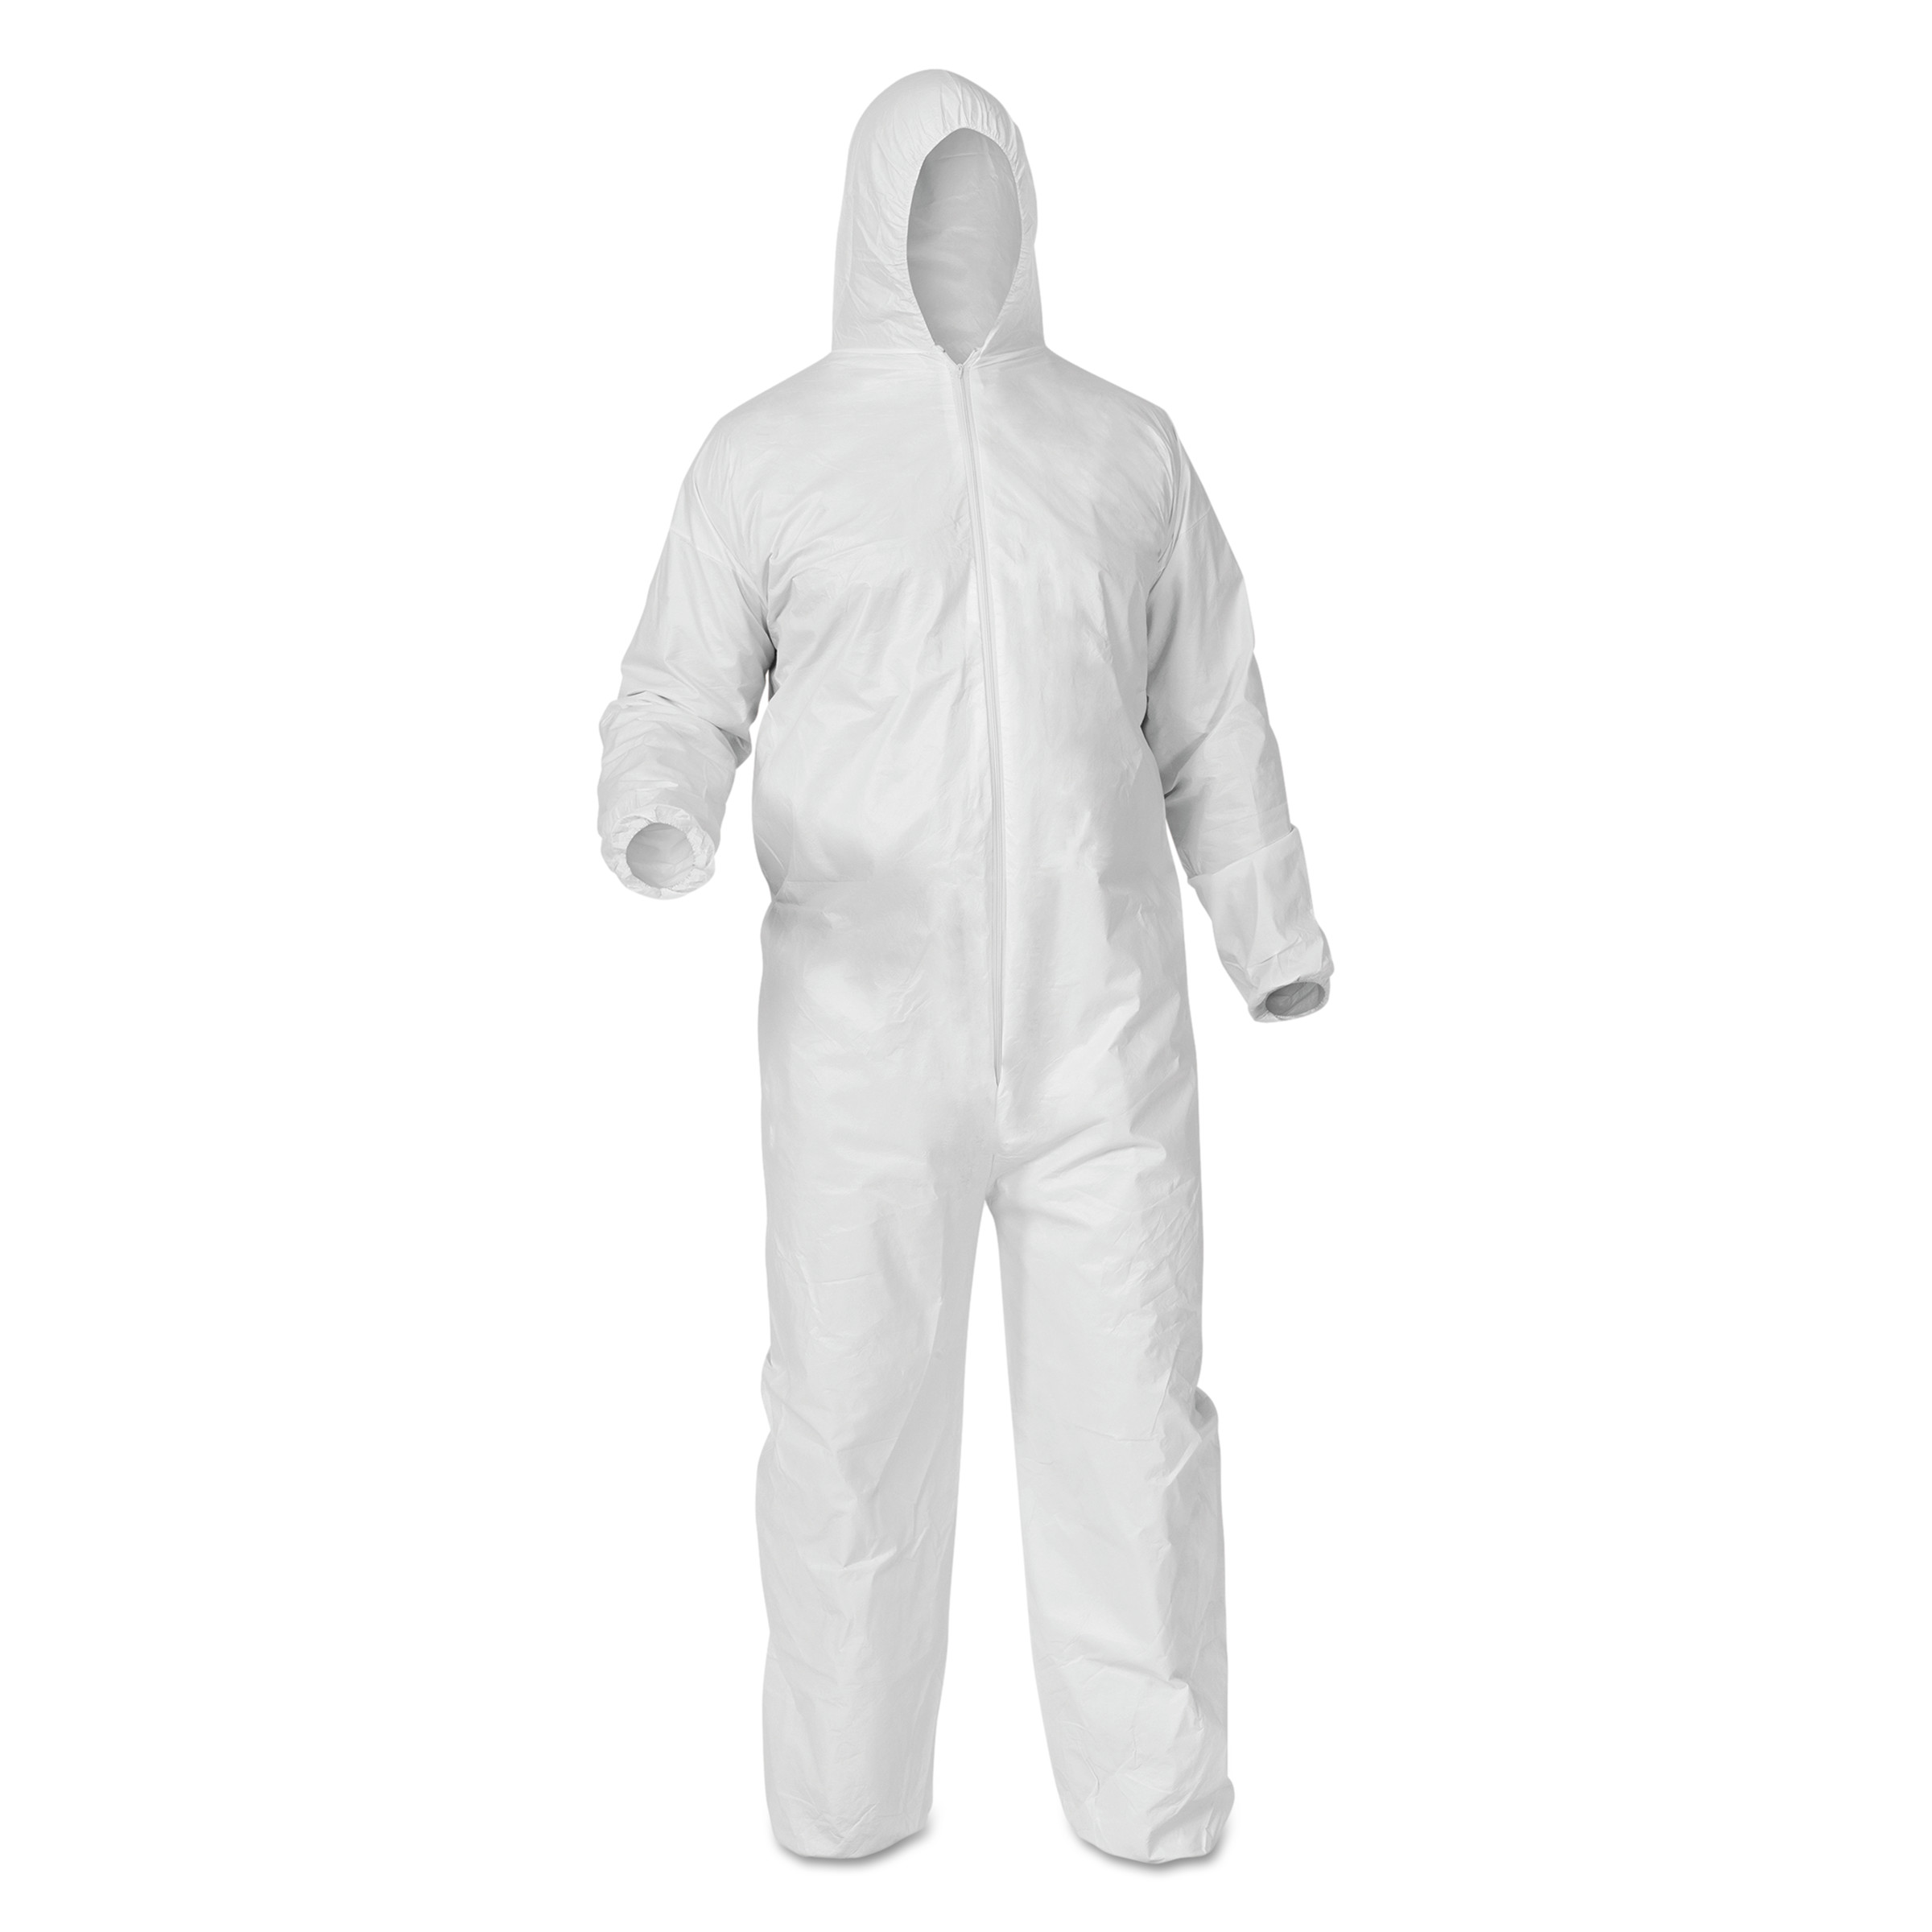 A35 Coveralls, Hooded, X-Large, White, 25 Per Carton by Kimberly Clark